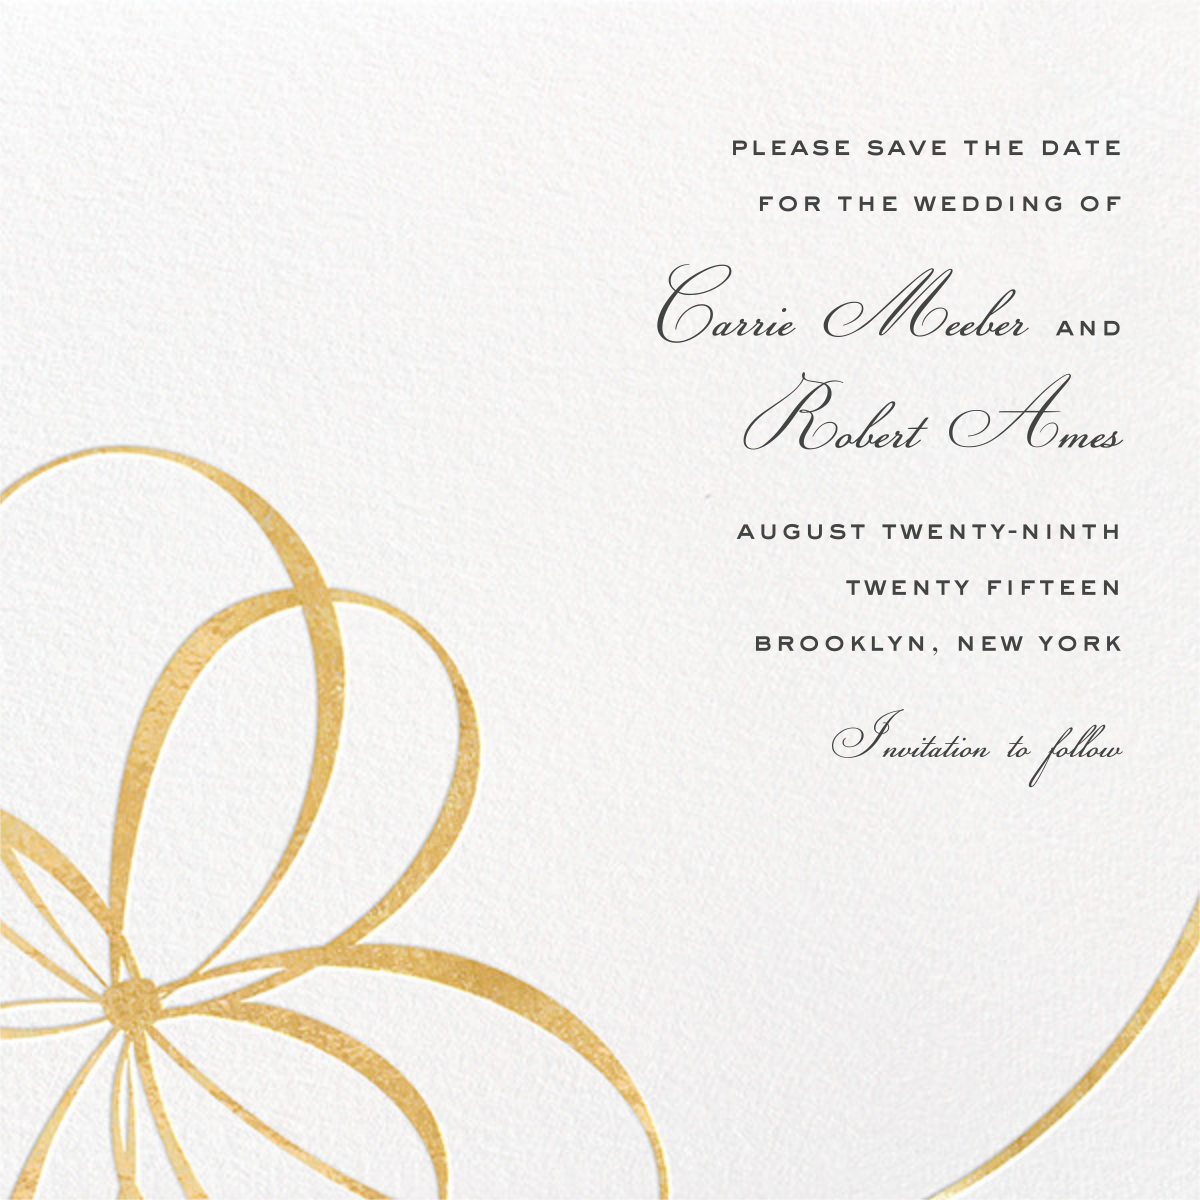 Belle Boulevard (Save the Date) - Gold - kate spade new york - Save the date